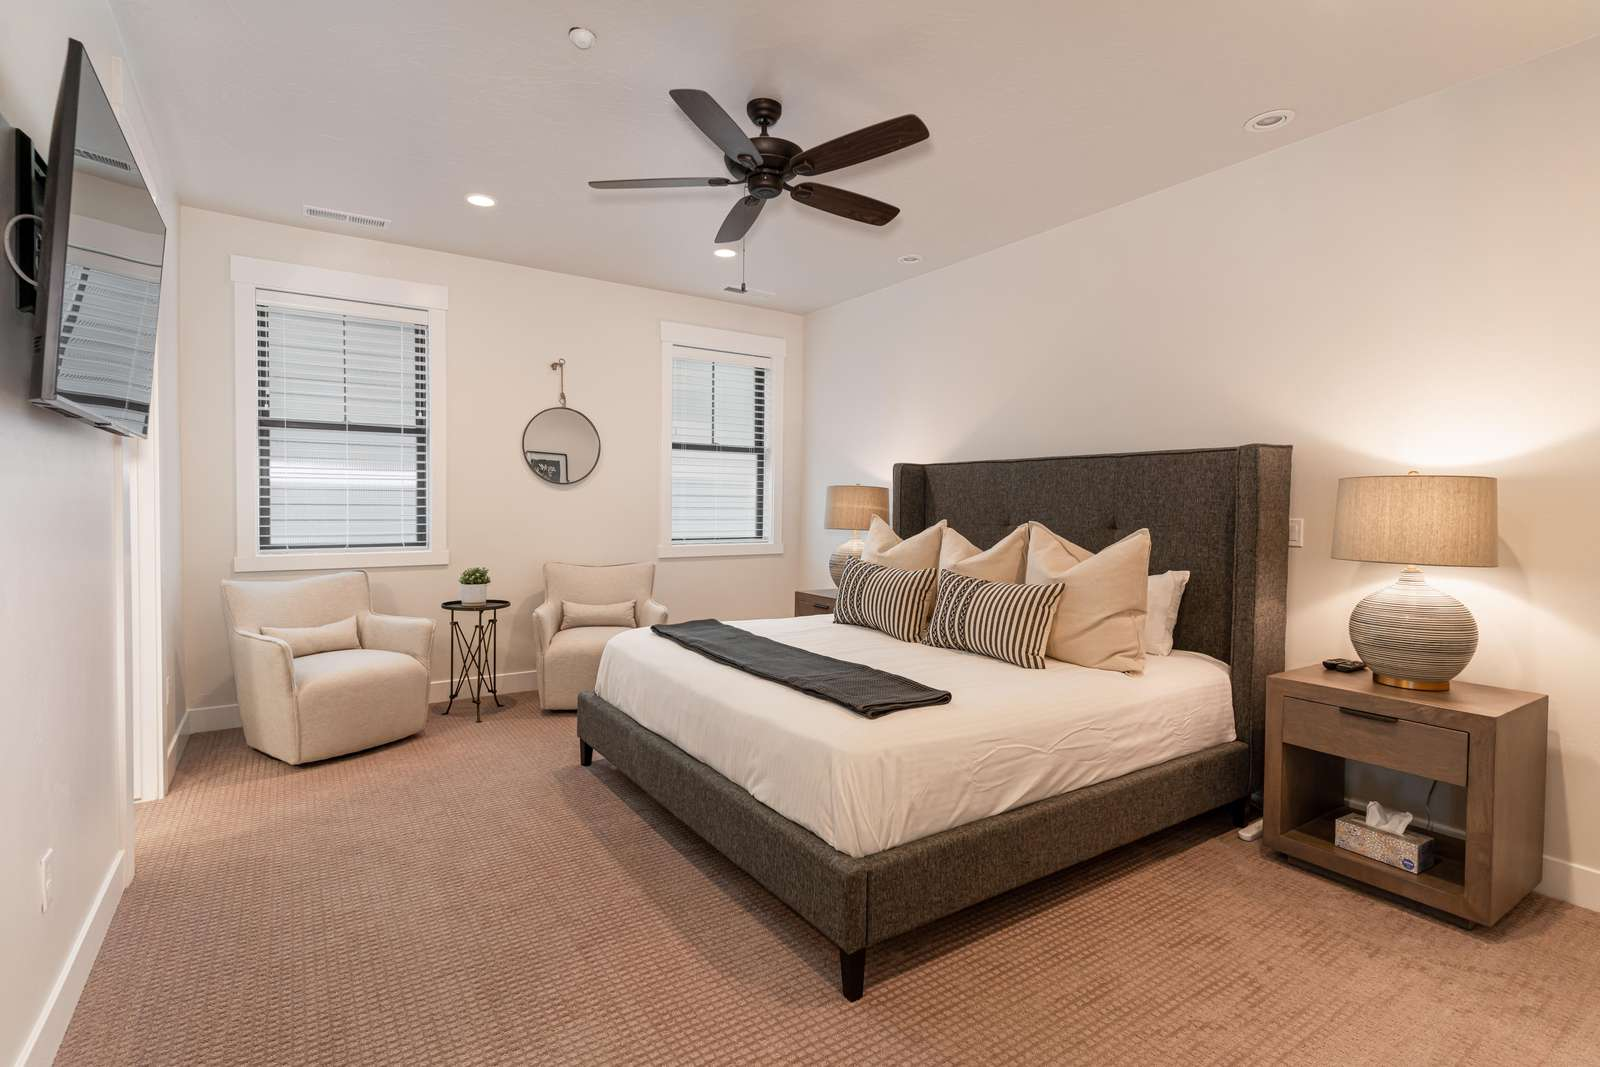 Master King Bedroom with ensuite - first floor